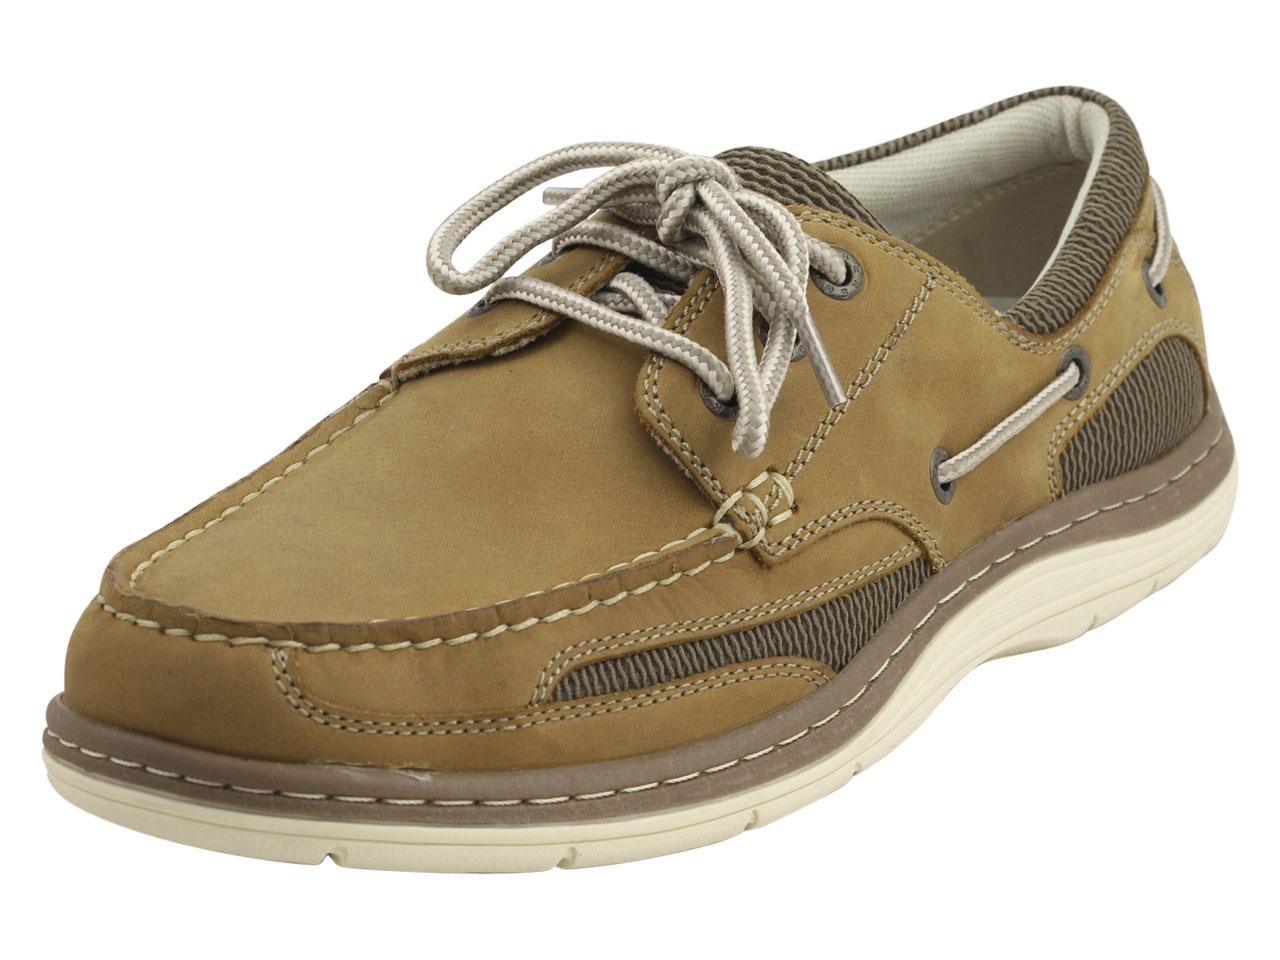 Image of Dockers Men's Lakeport Memory Foam Loafers Boat Shoes - Brown - 12 D(M) US